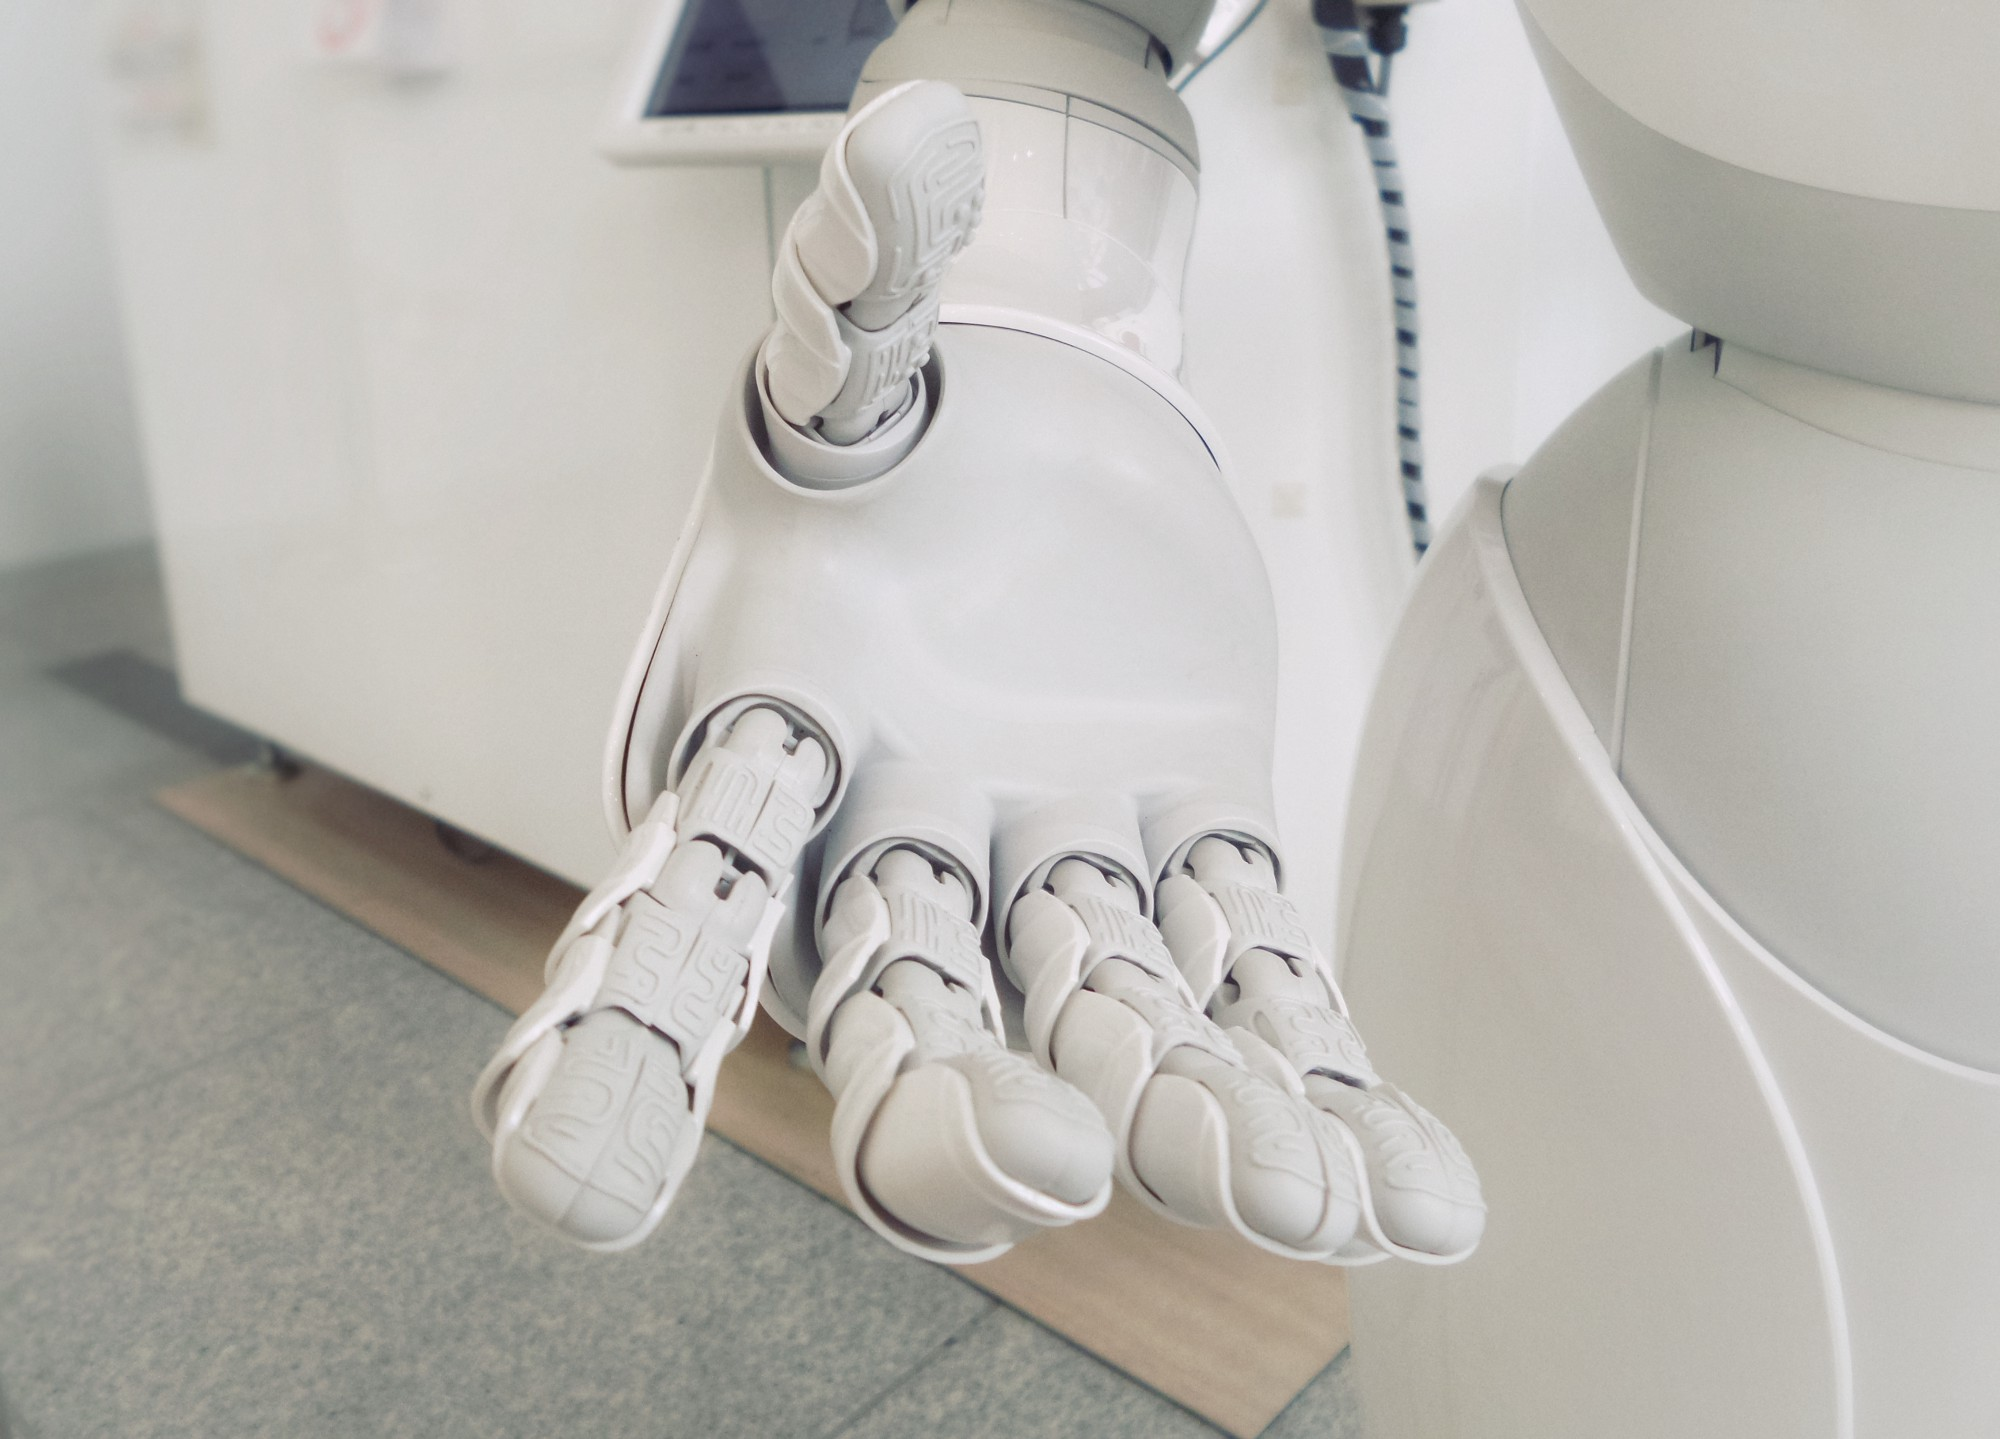 A robot hand reaching out as if to shake the user's hand.